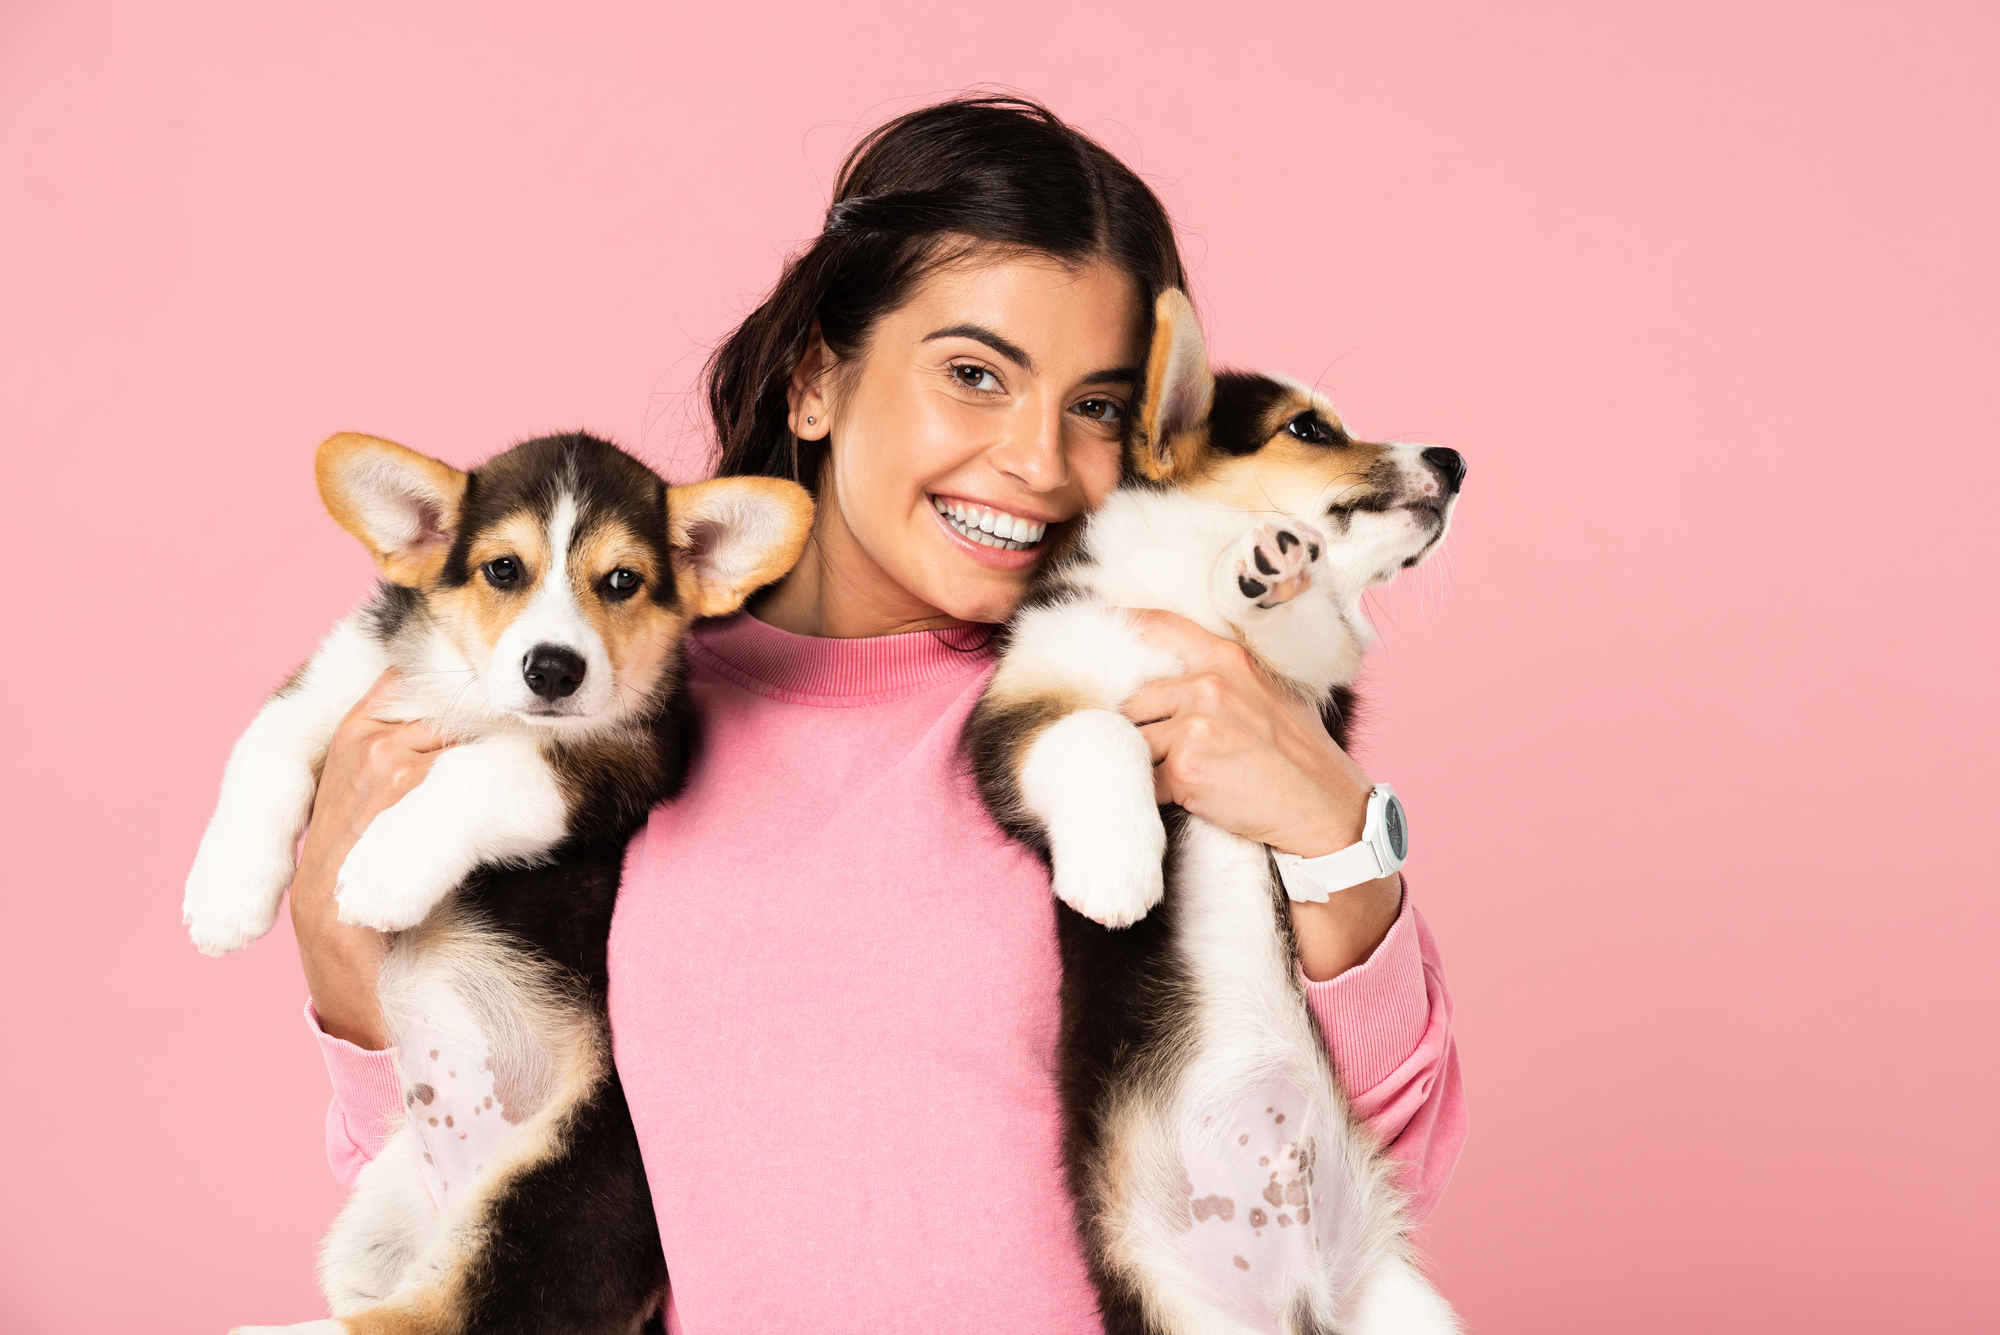 Attractive woman holding Welsh Corgi puppies, isolated on pink